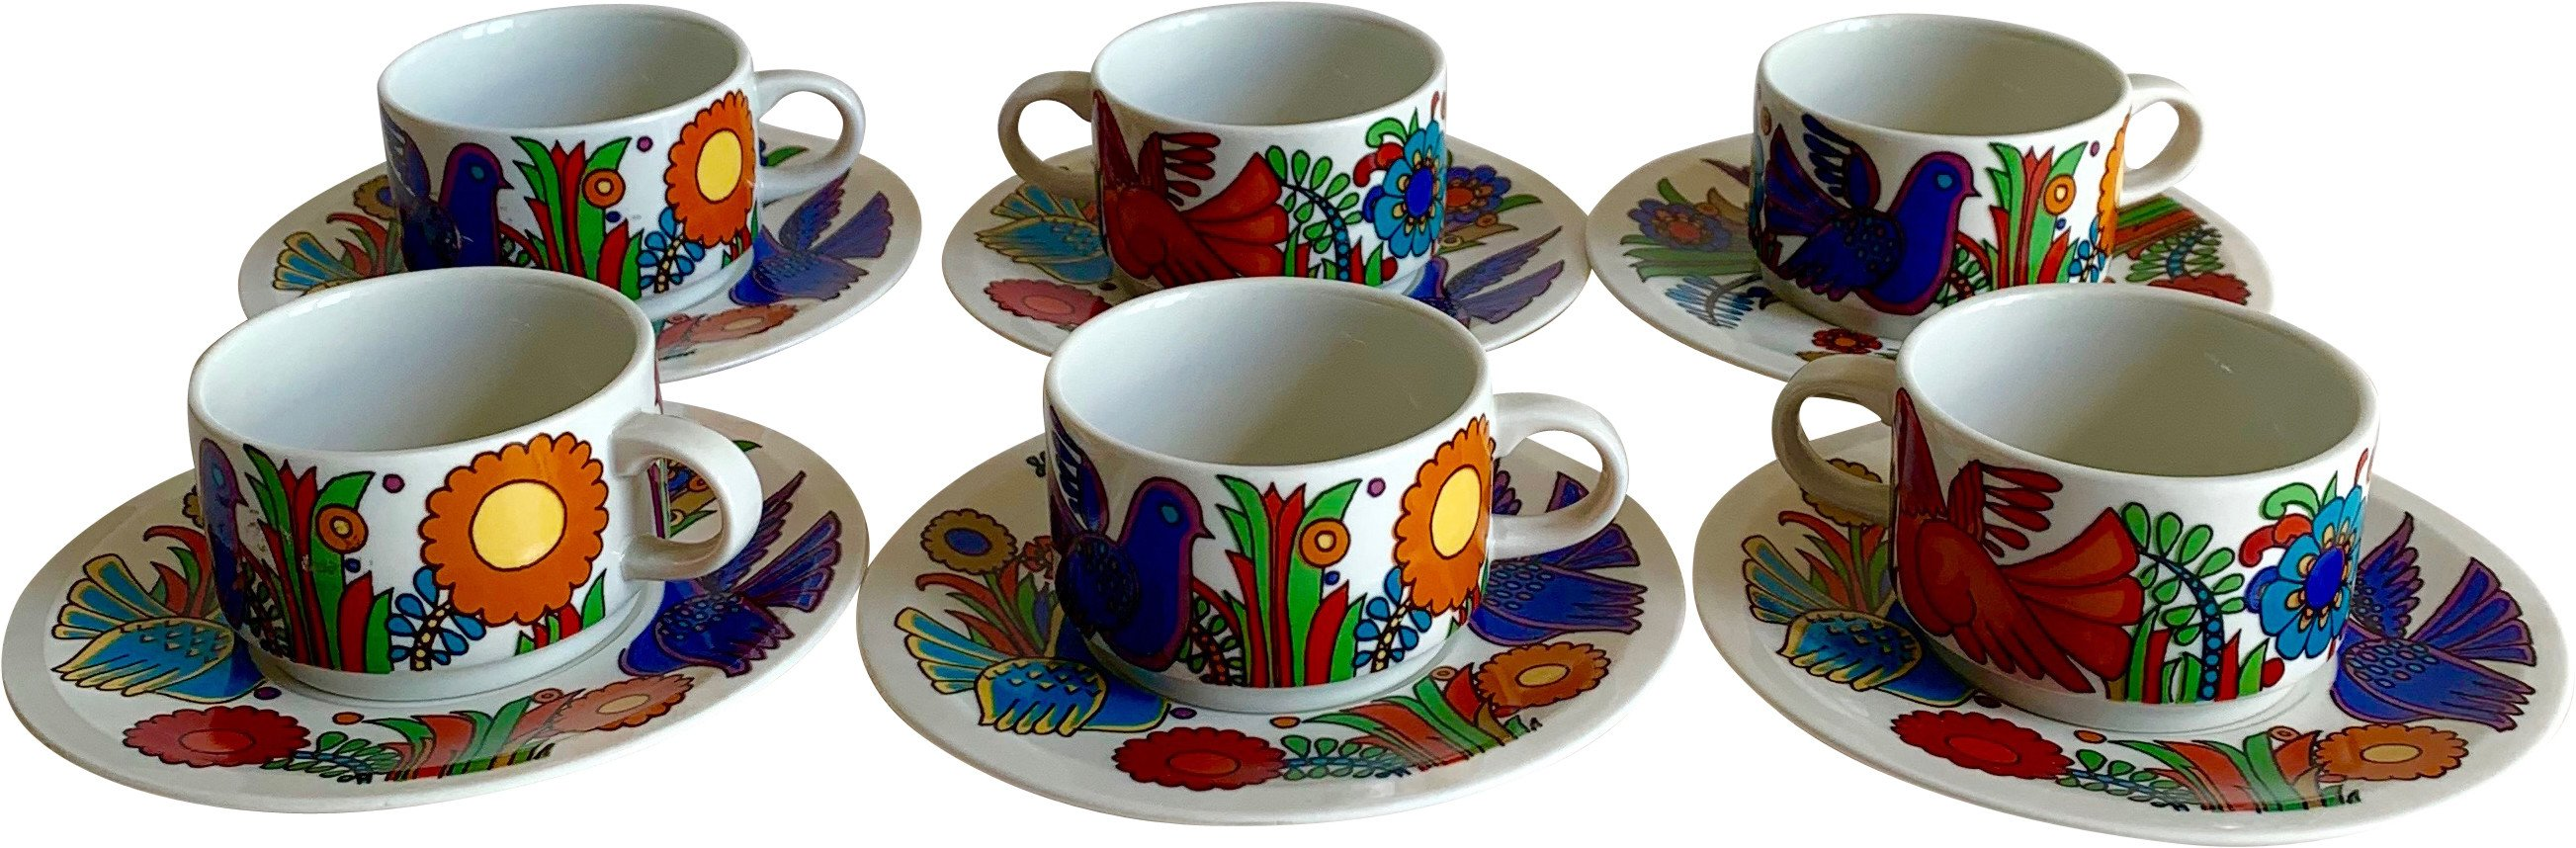 Dinnerware Set by C. Reuter for Villeroy & Boch, Germany, 1960s